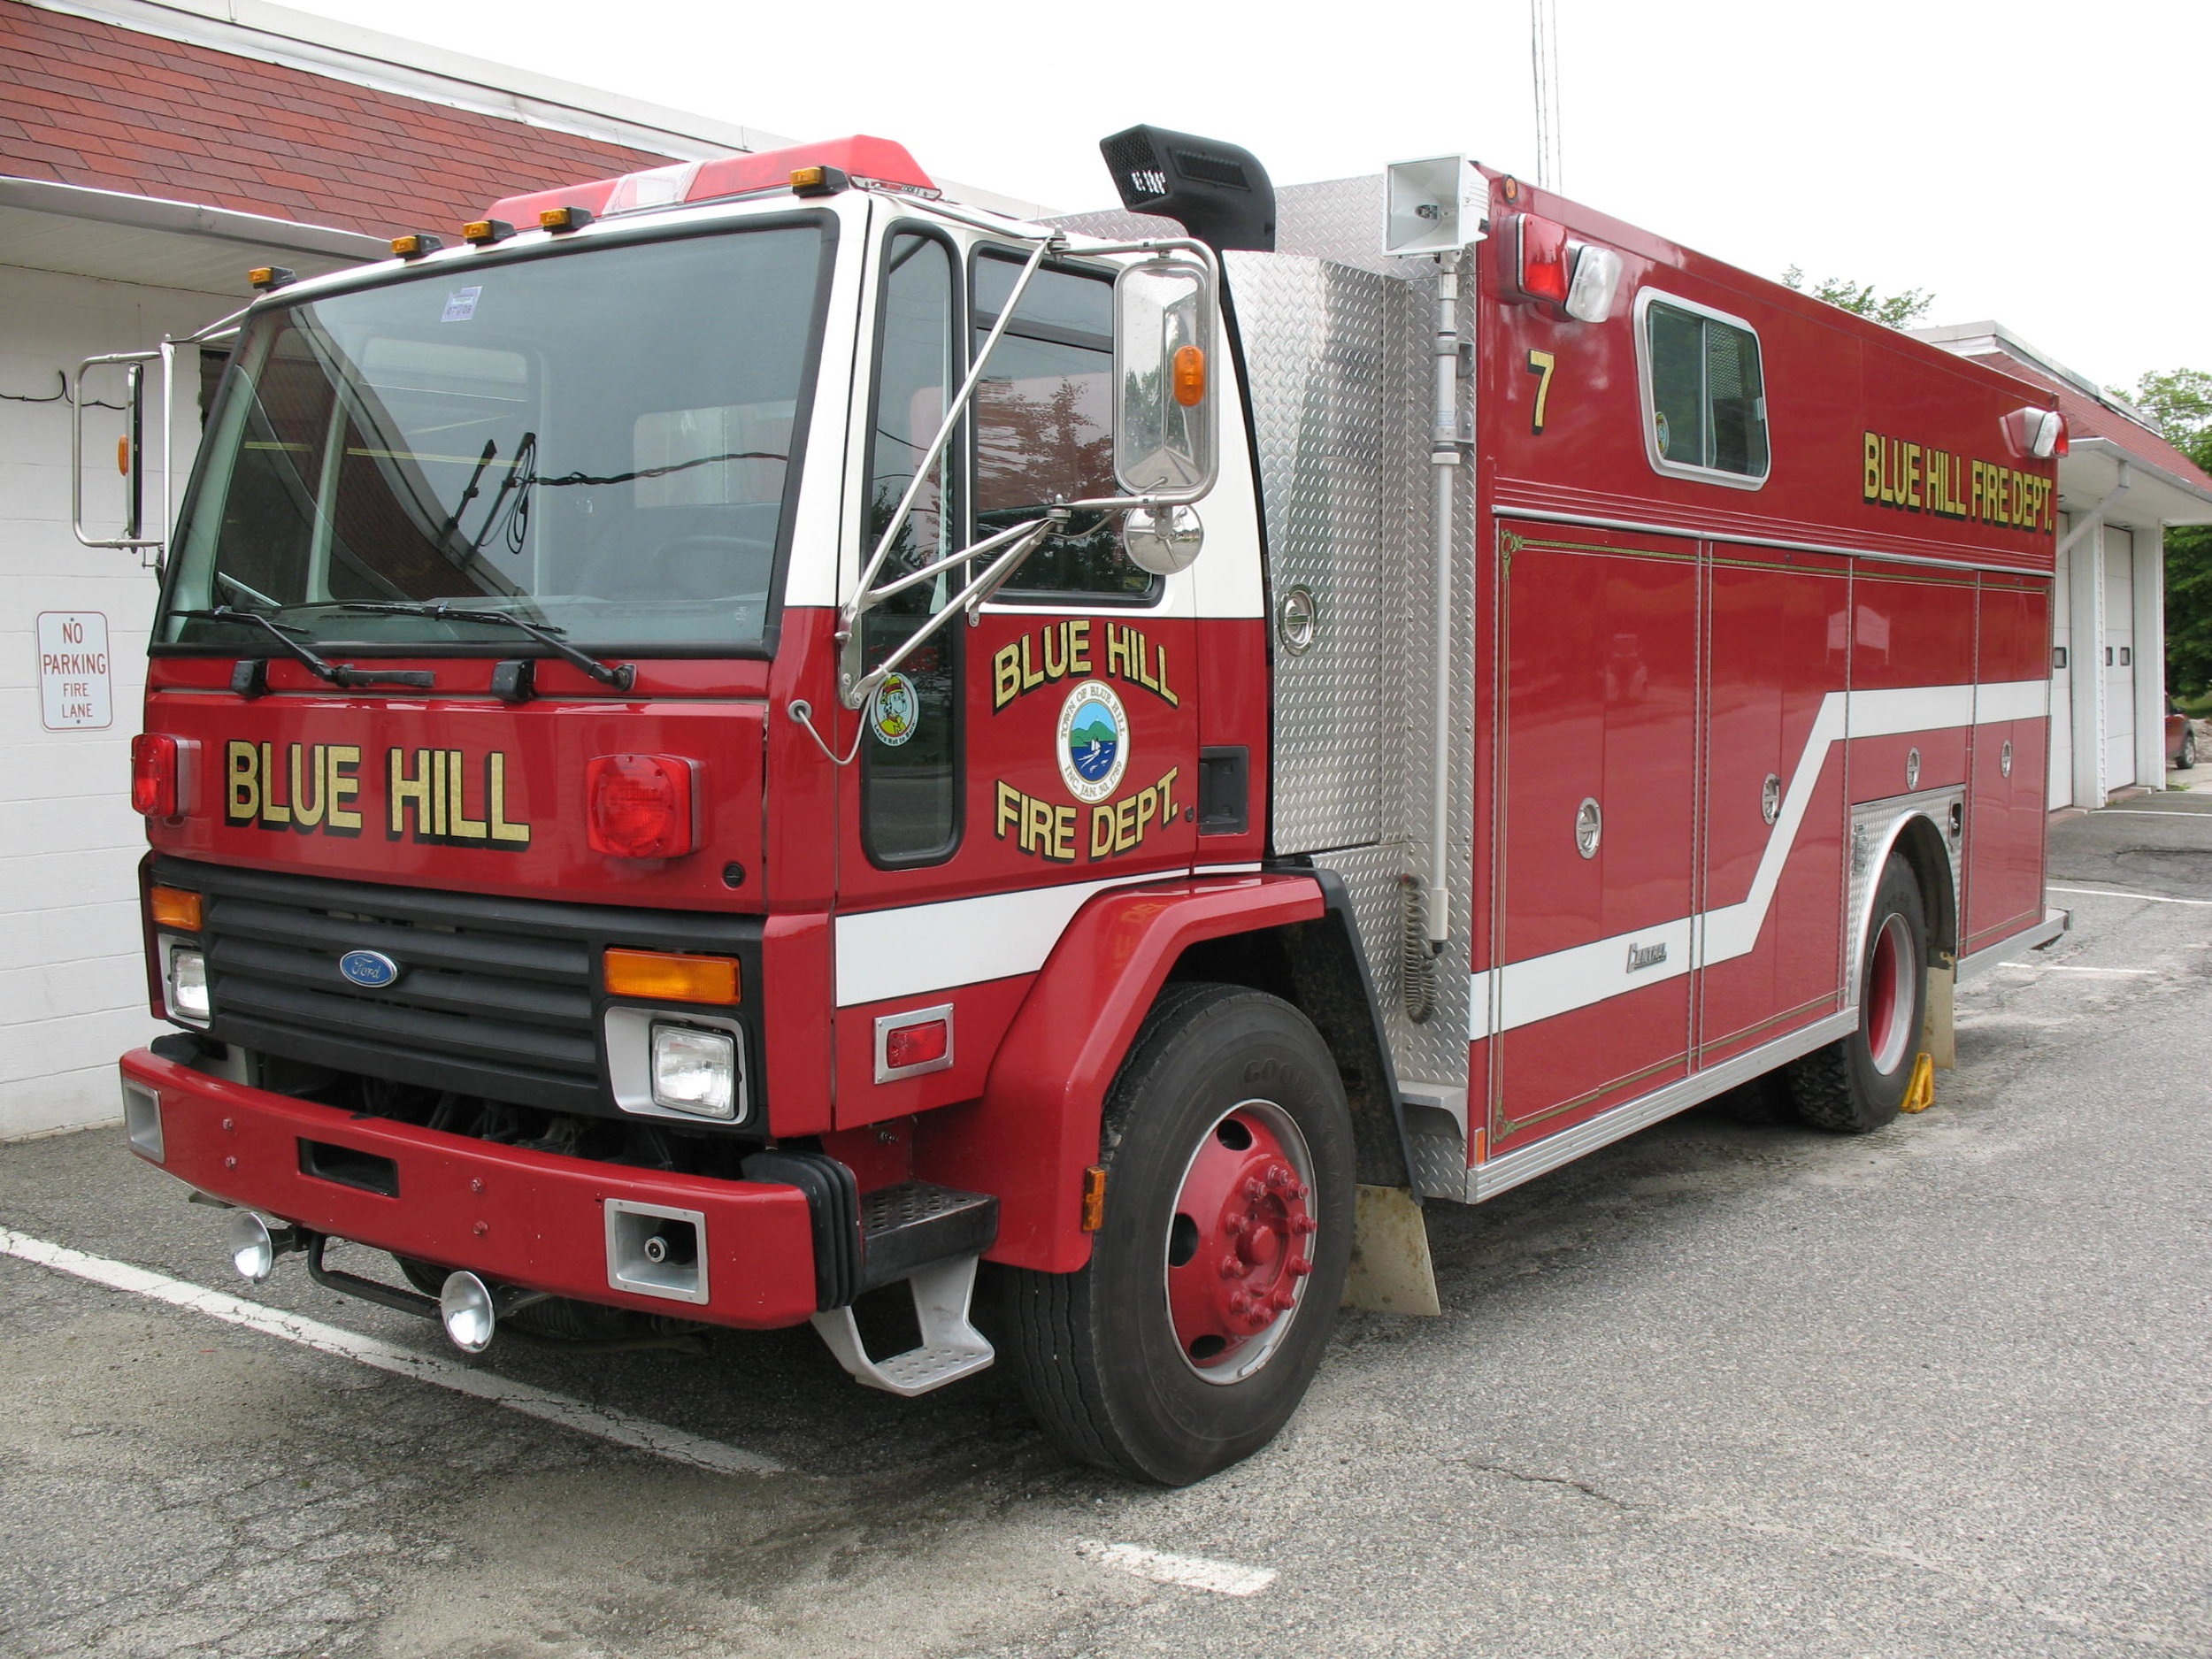 Town-of-Blue-Hill-Engine-7-Fire-Department.JPG